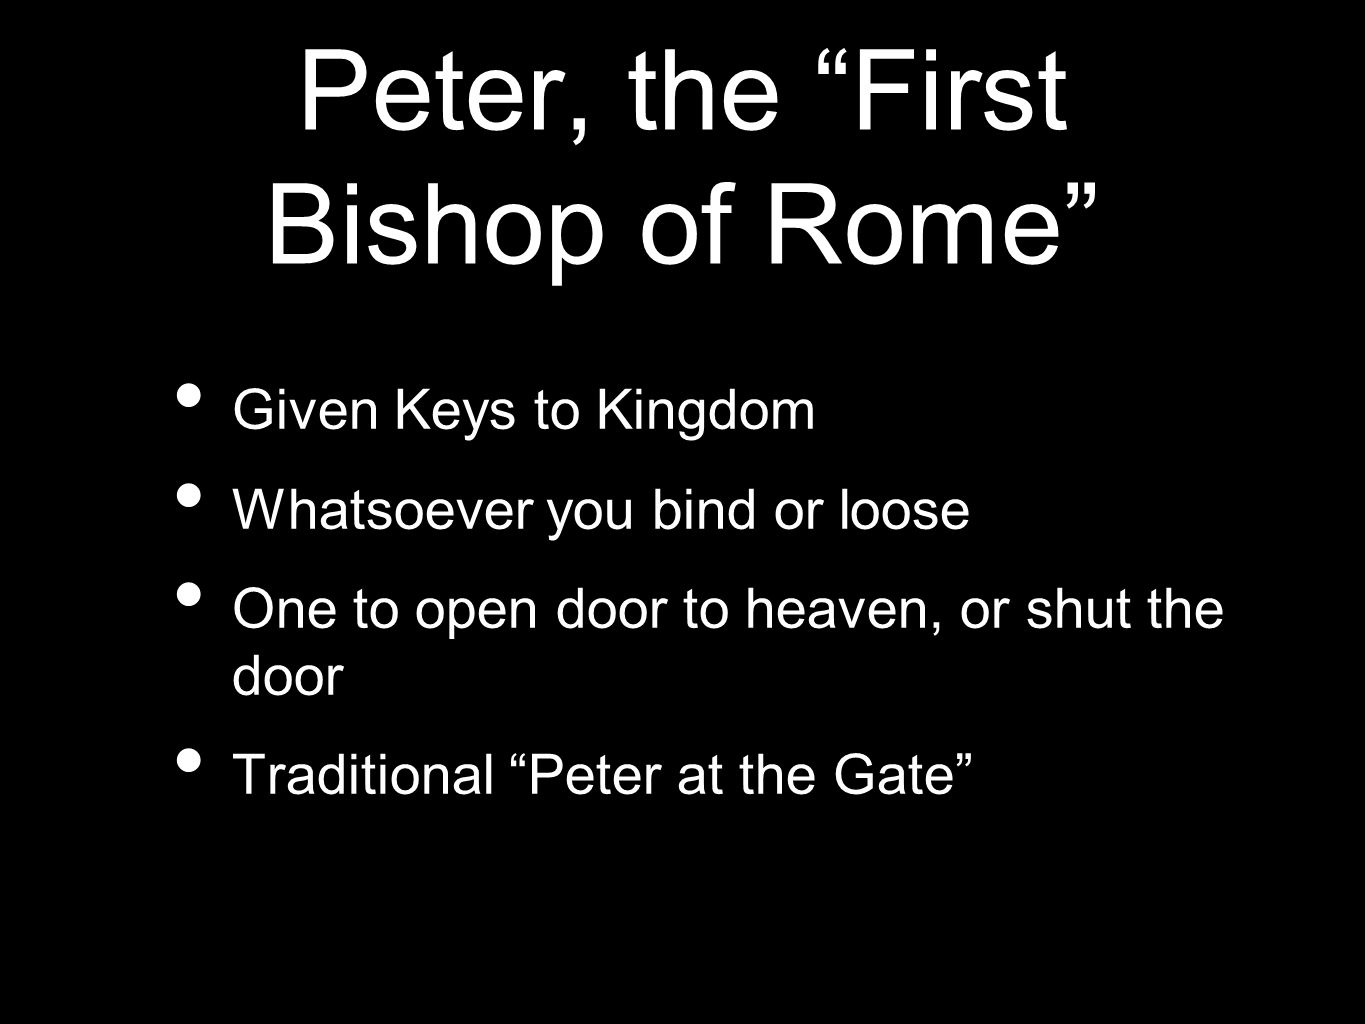 Peter, the First Bishop of Rome